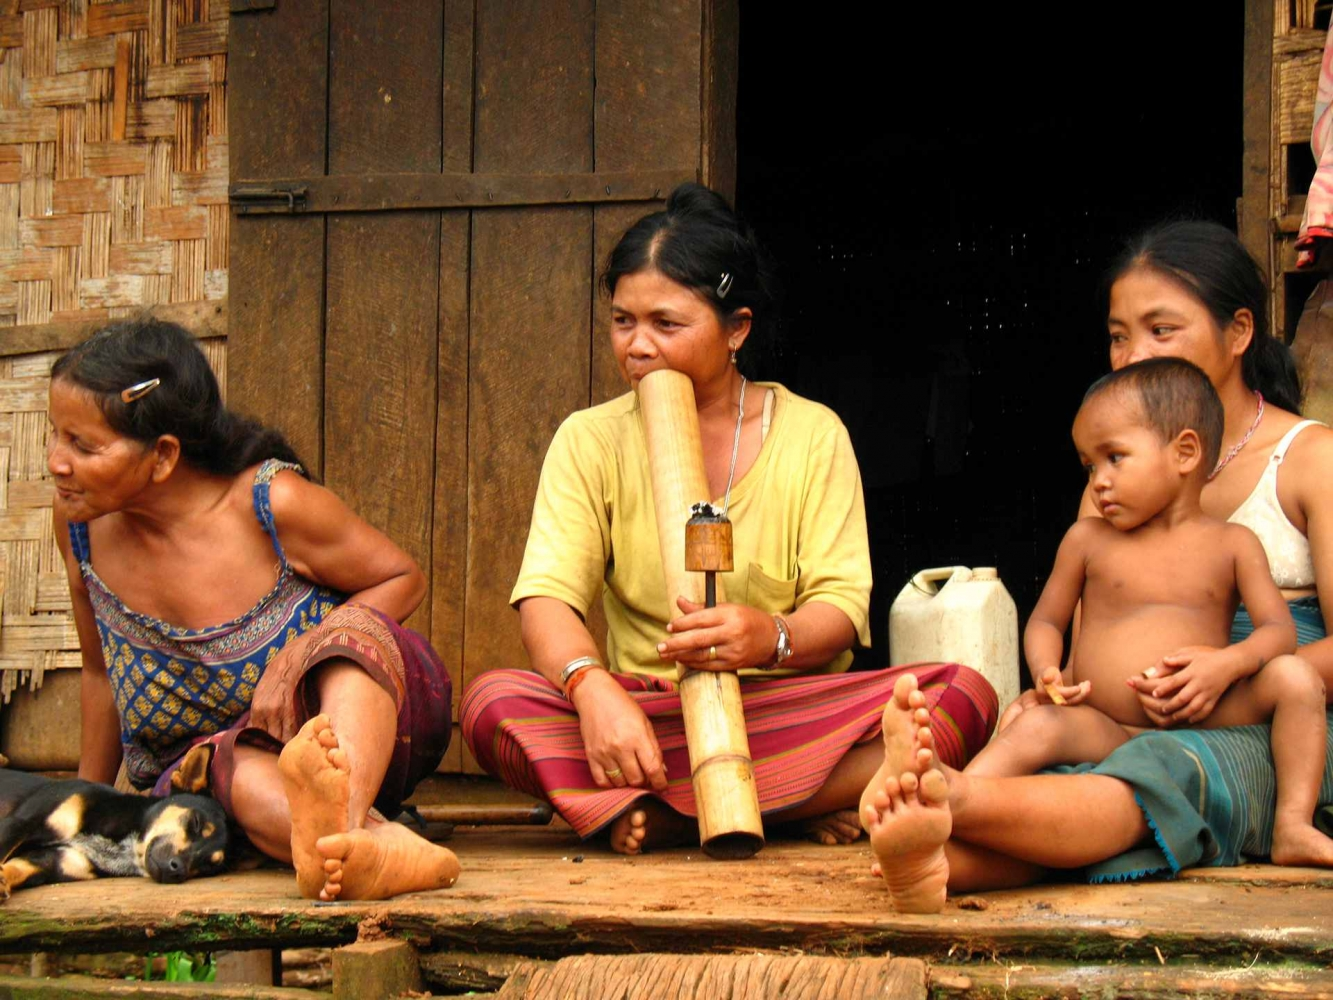 Lao women in traditional village house